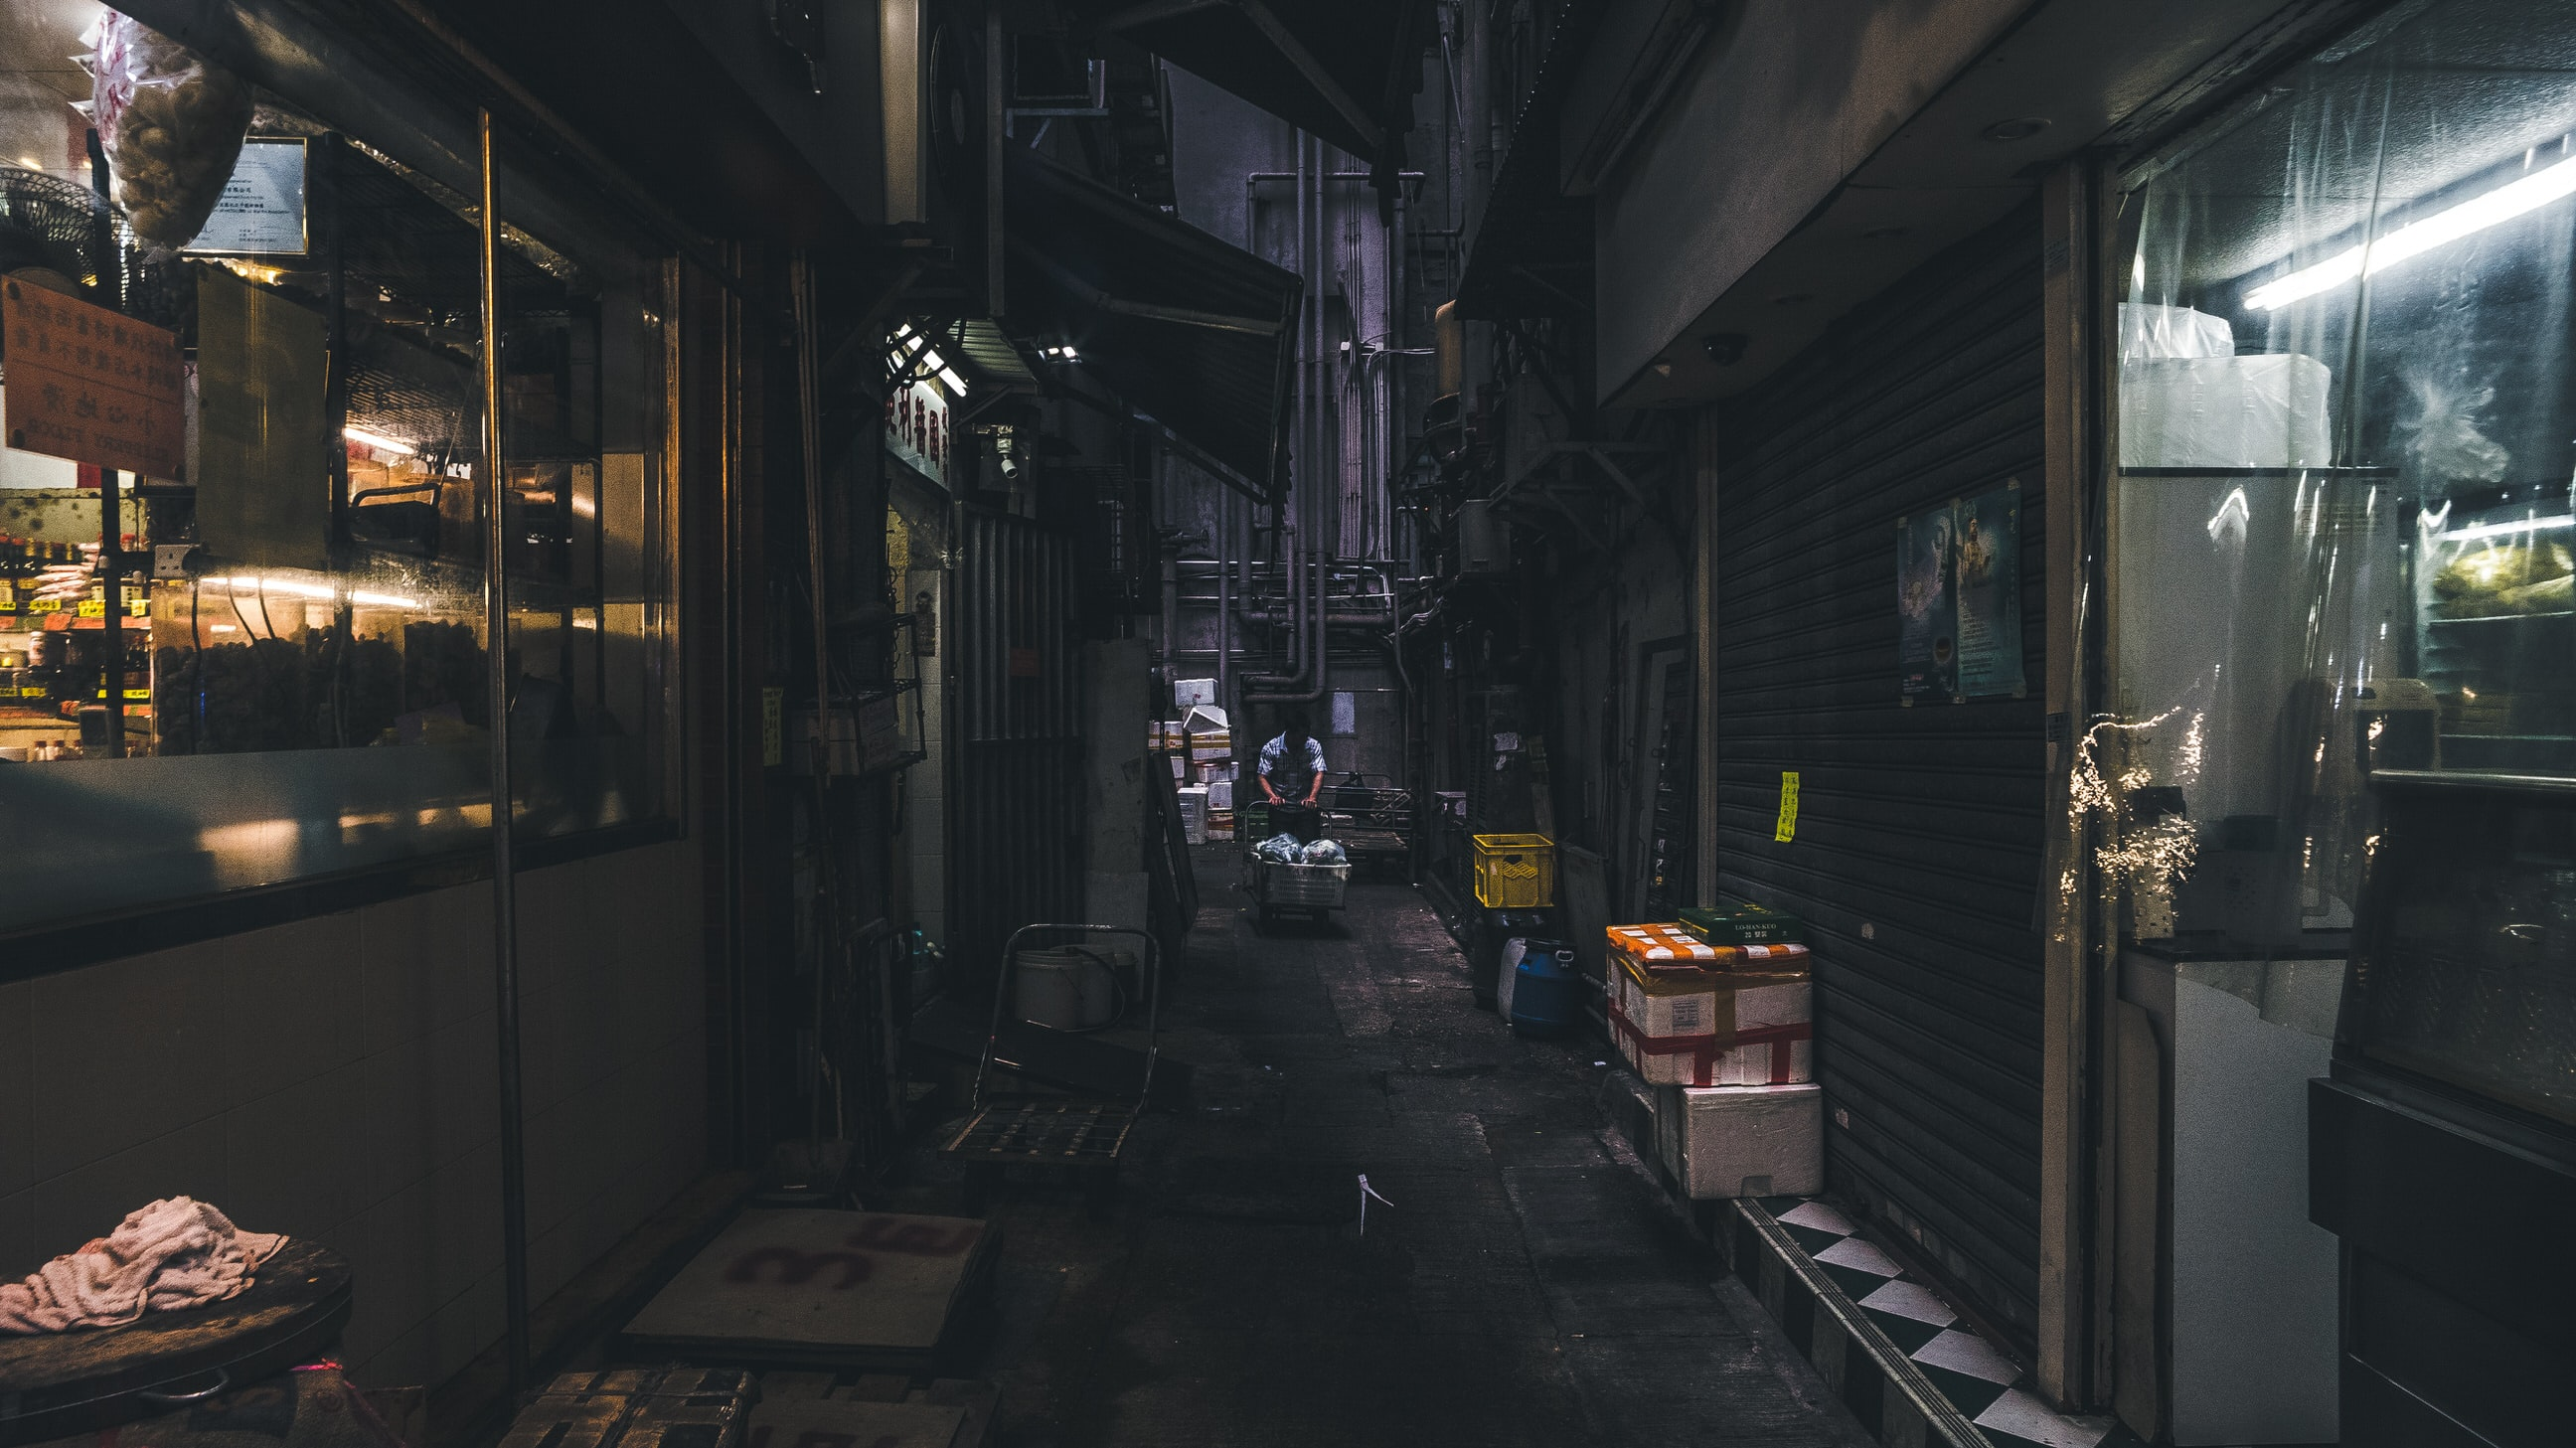 street at night time